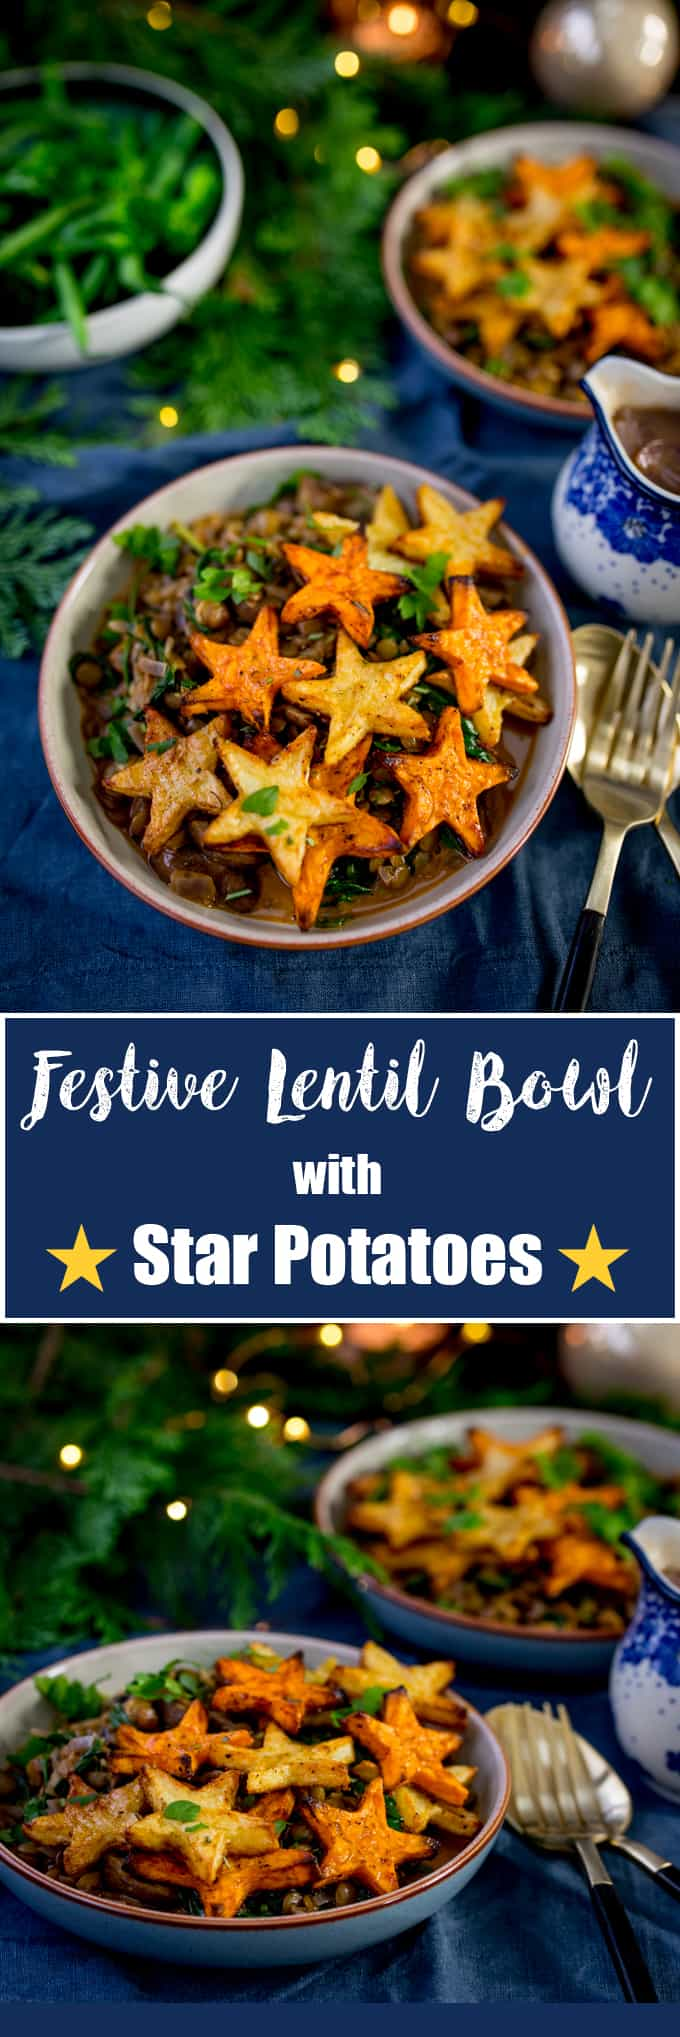 My Lentil and Mushroom Bowl with Star Potatoes makes a great festive recipe! Plus a quick gravy recipe for the rest of the Christmas veg. All vegan too!